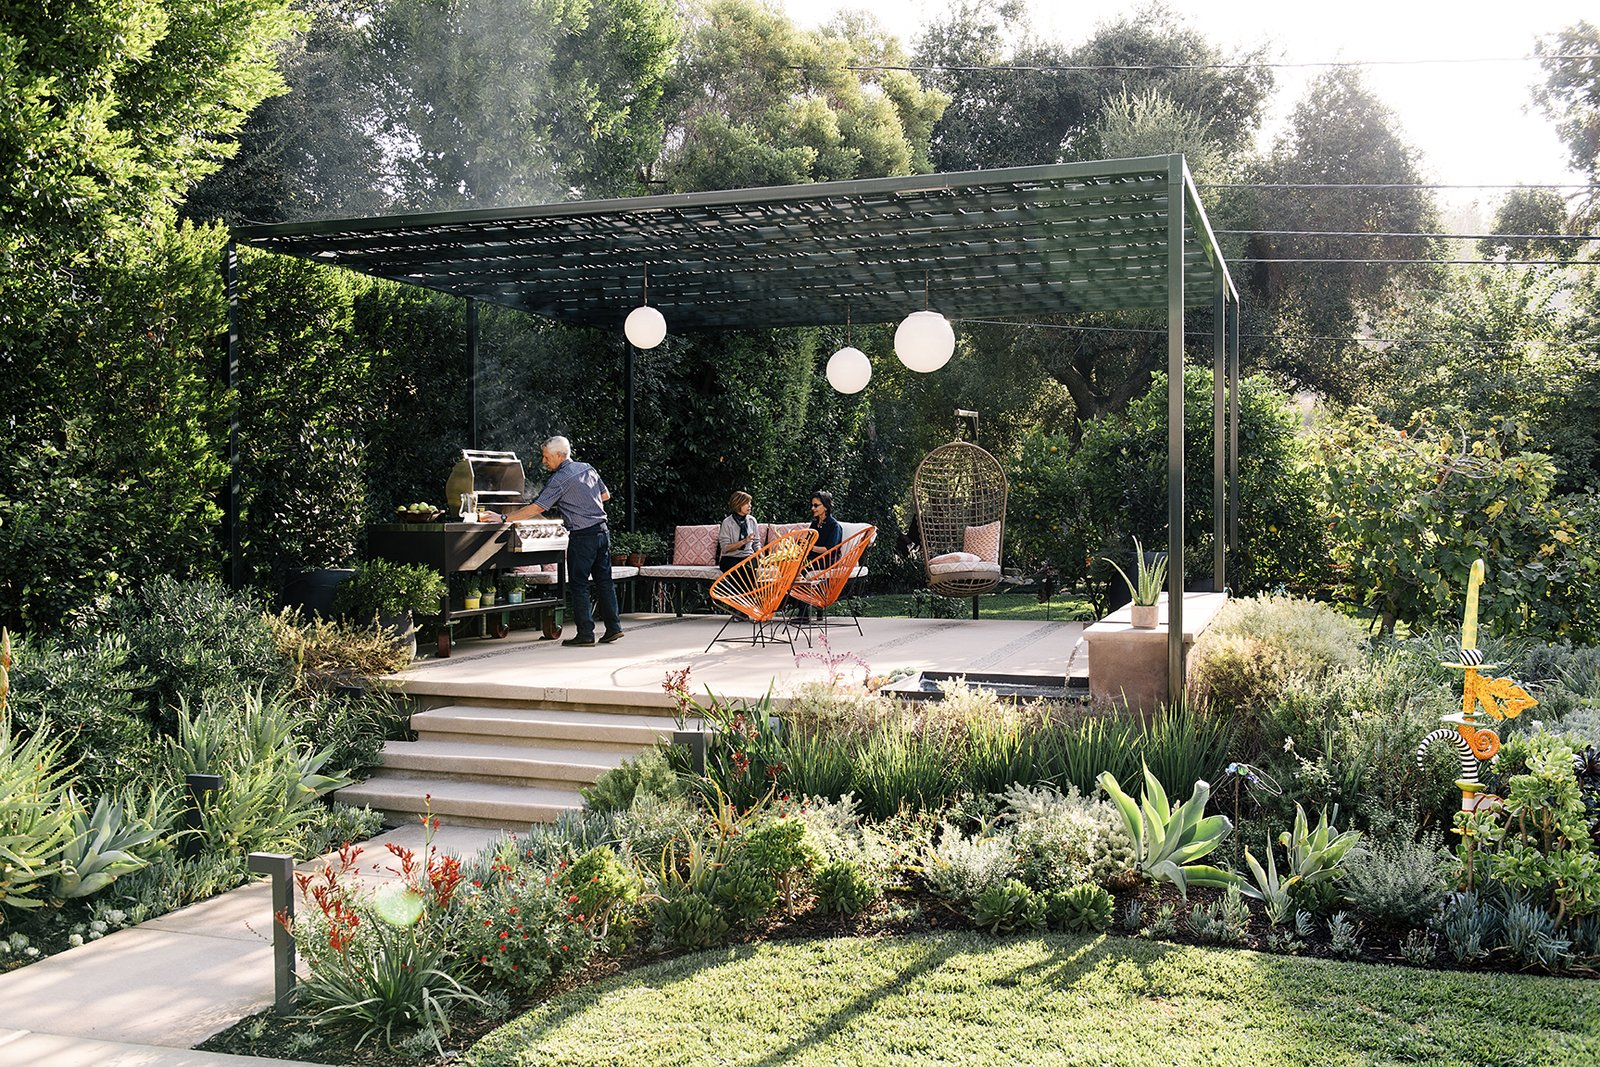 Landscape designer Lillian Montalvo swapped disparate plantings for a cohesive plan centered on a pergola. Tagged: Outdoor.  Photo 4 of 9 in A Laser-Cut Pergola Completes a Tranquil Garden in L.A. That's Perfect For Entertaining